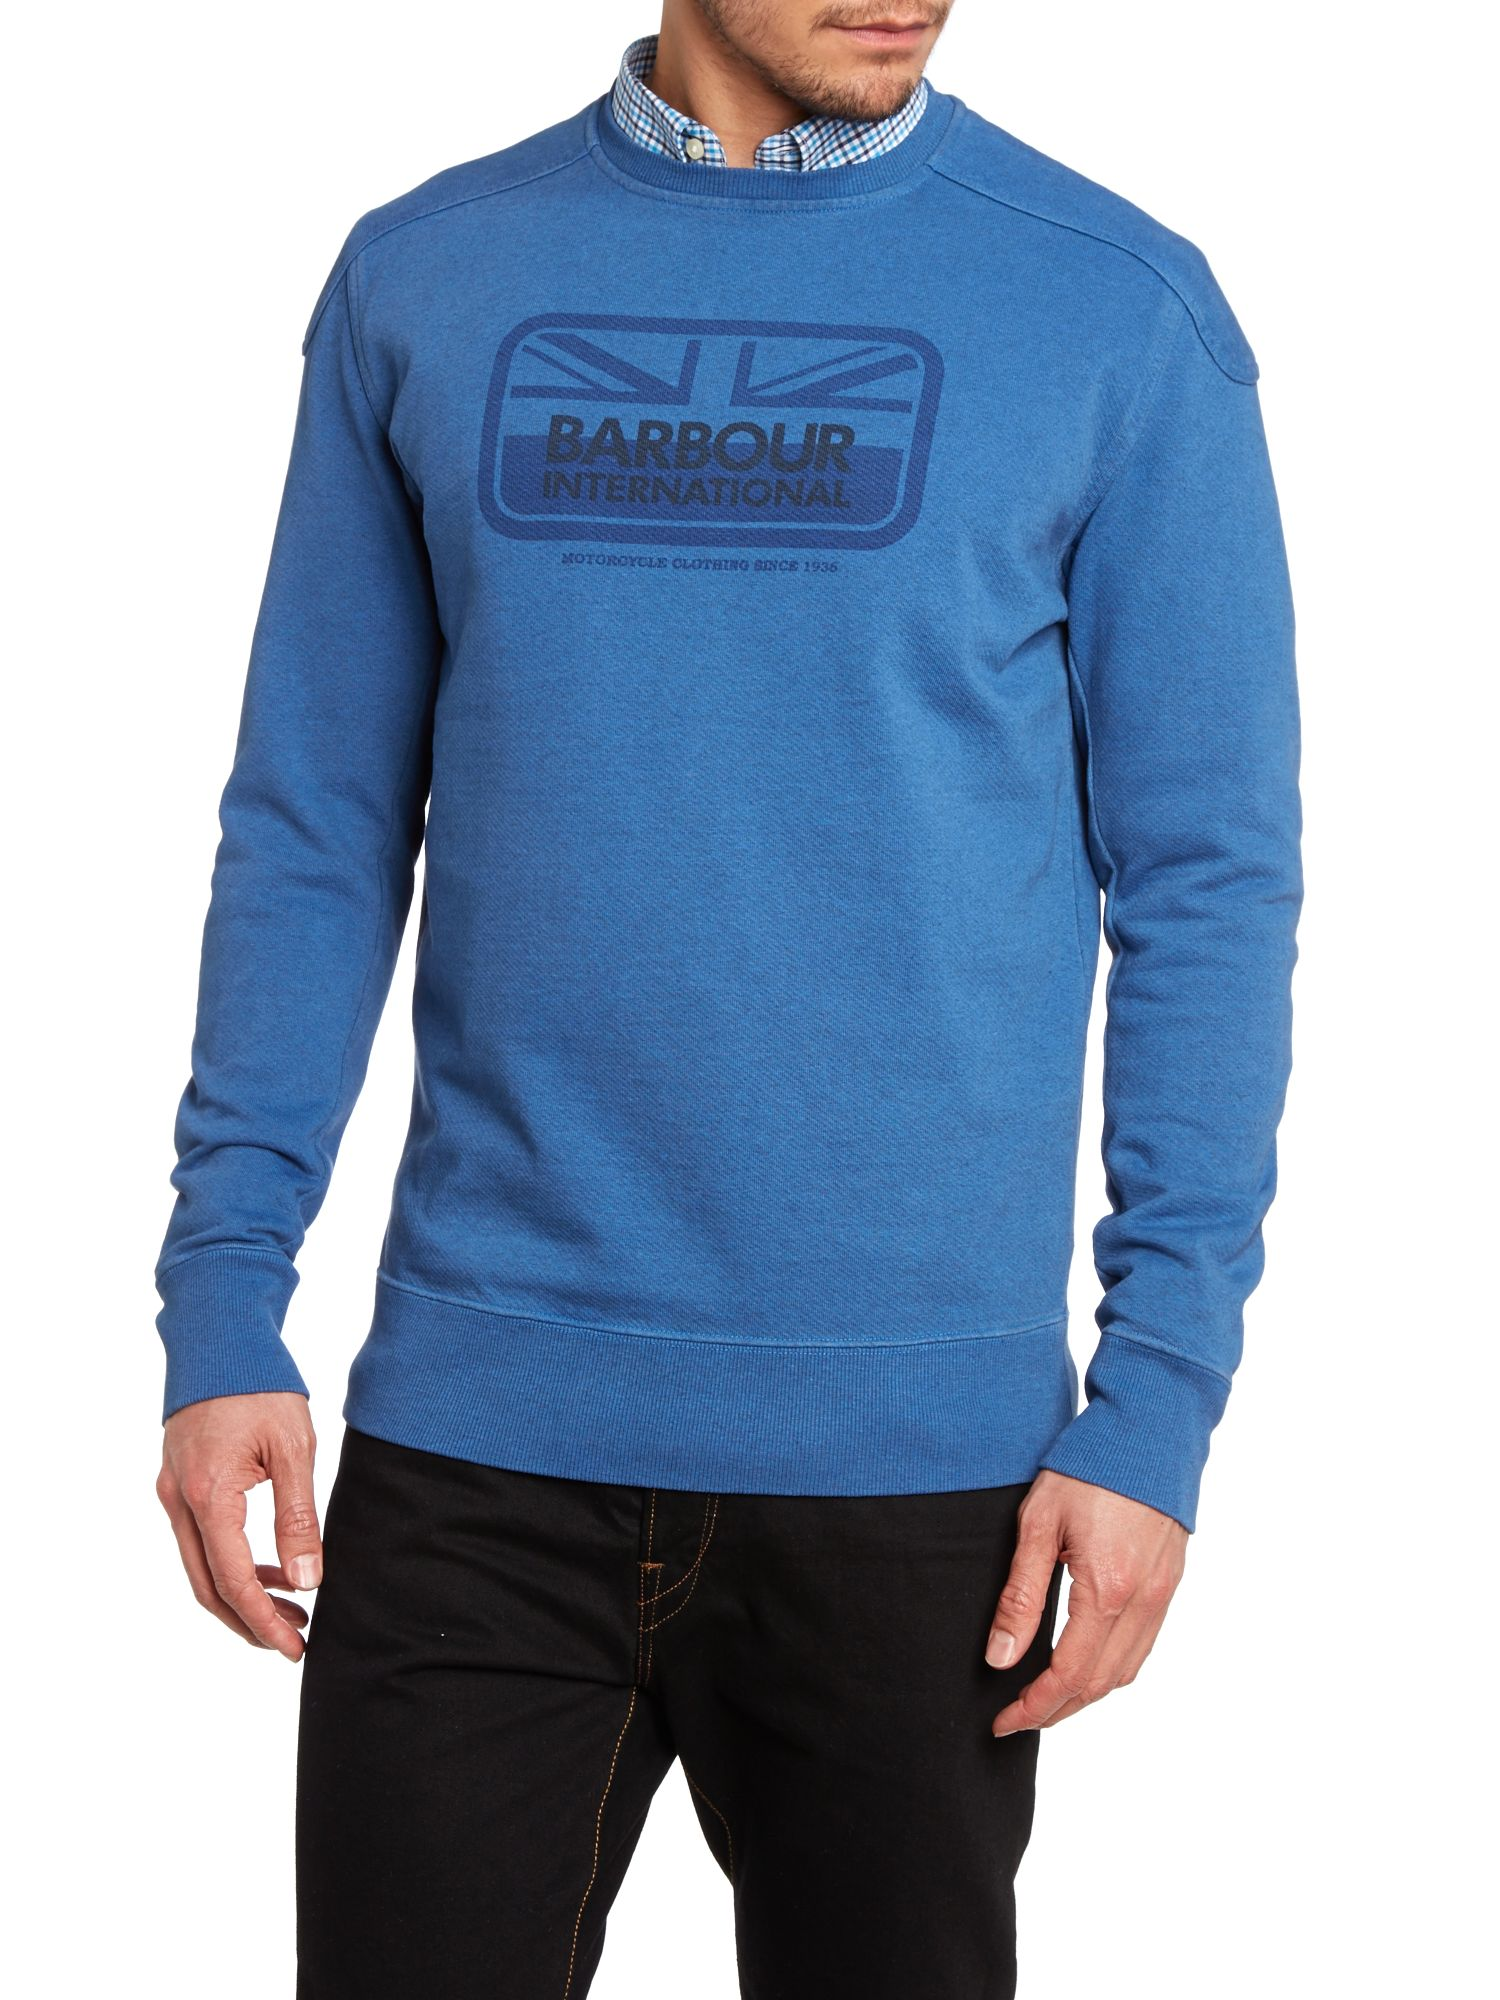 Tourer crew neck sweatshirt